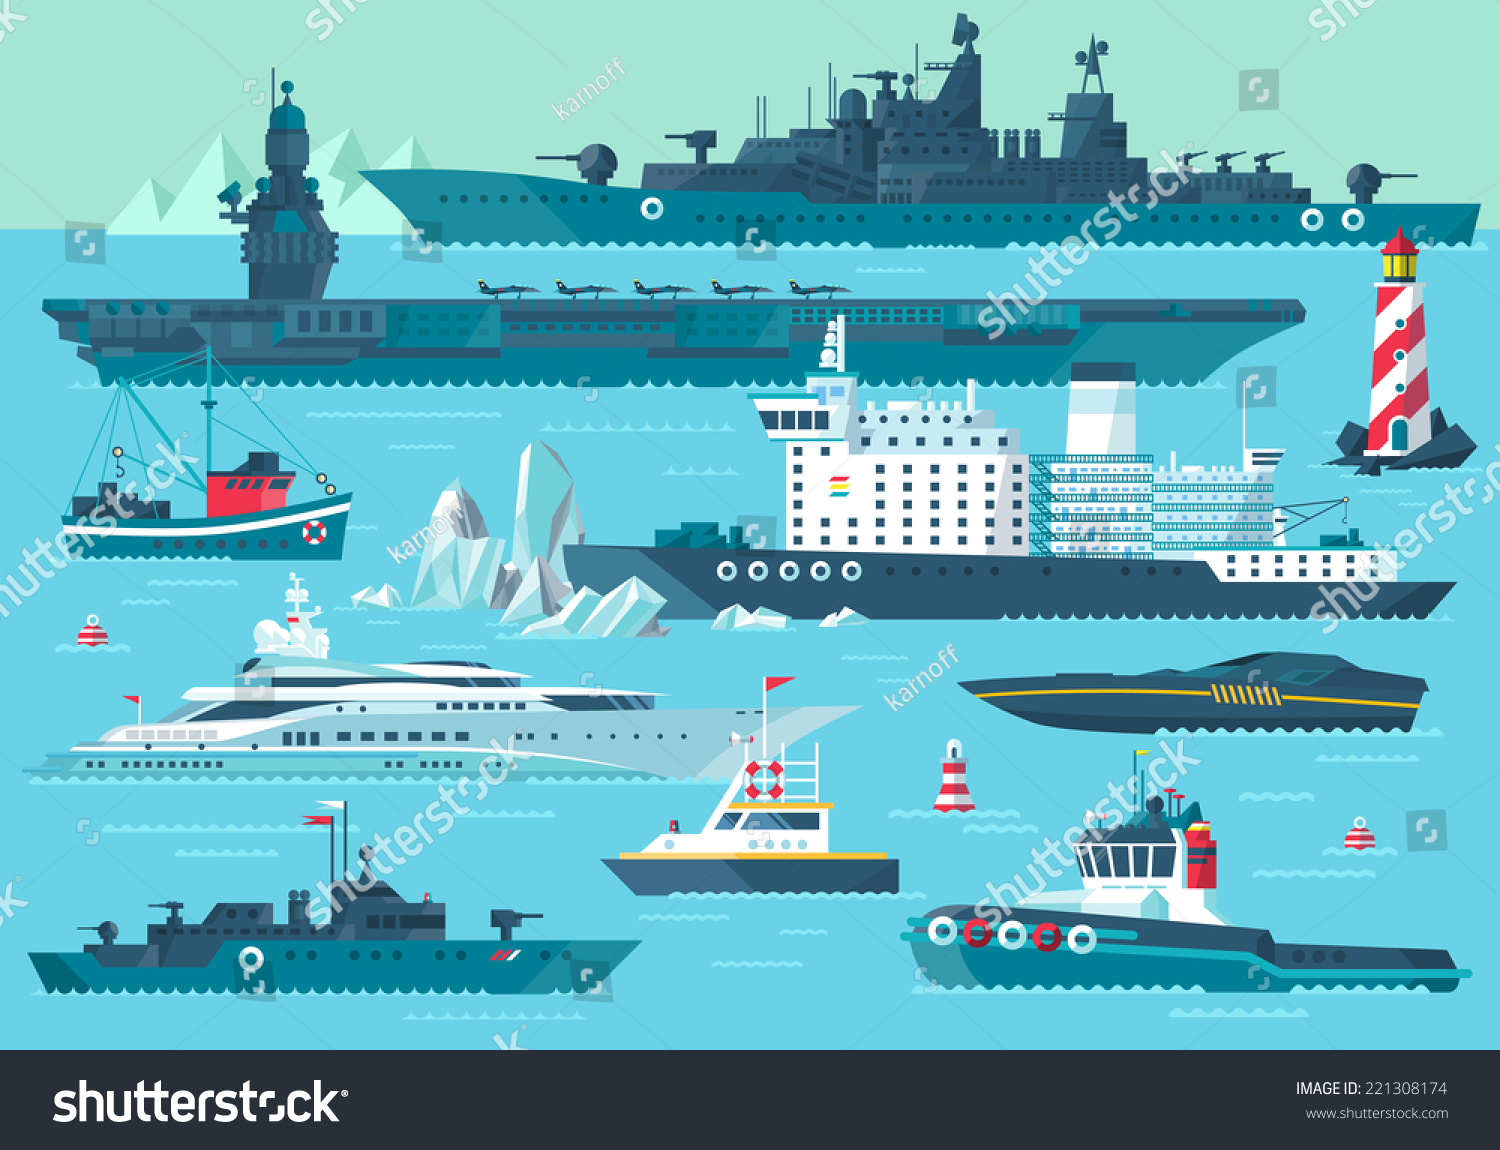 Modern Ship Design : Super set water carriage maritime transport stock vector